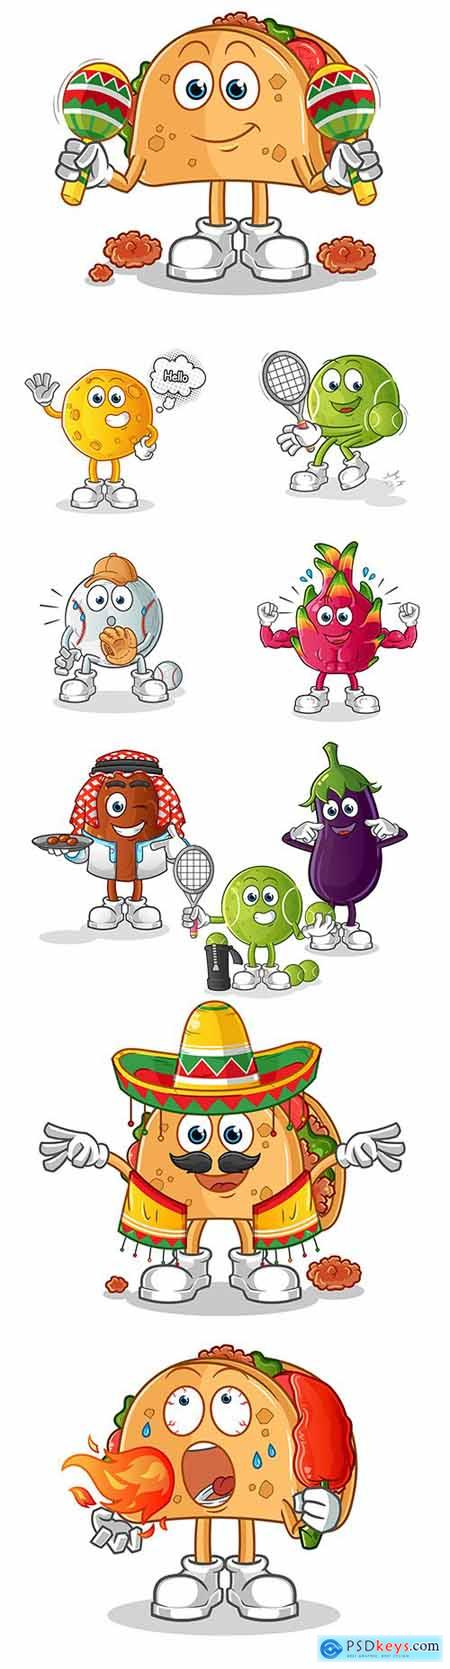 Fruit and vegetables cartoon characters illustration